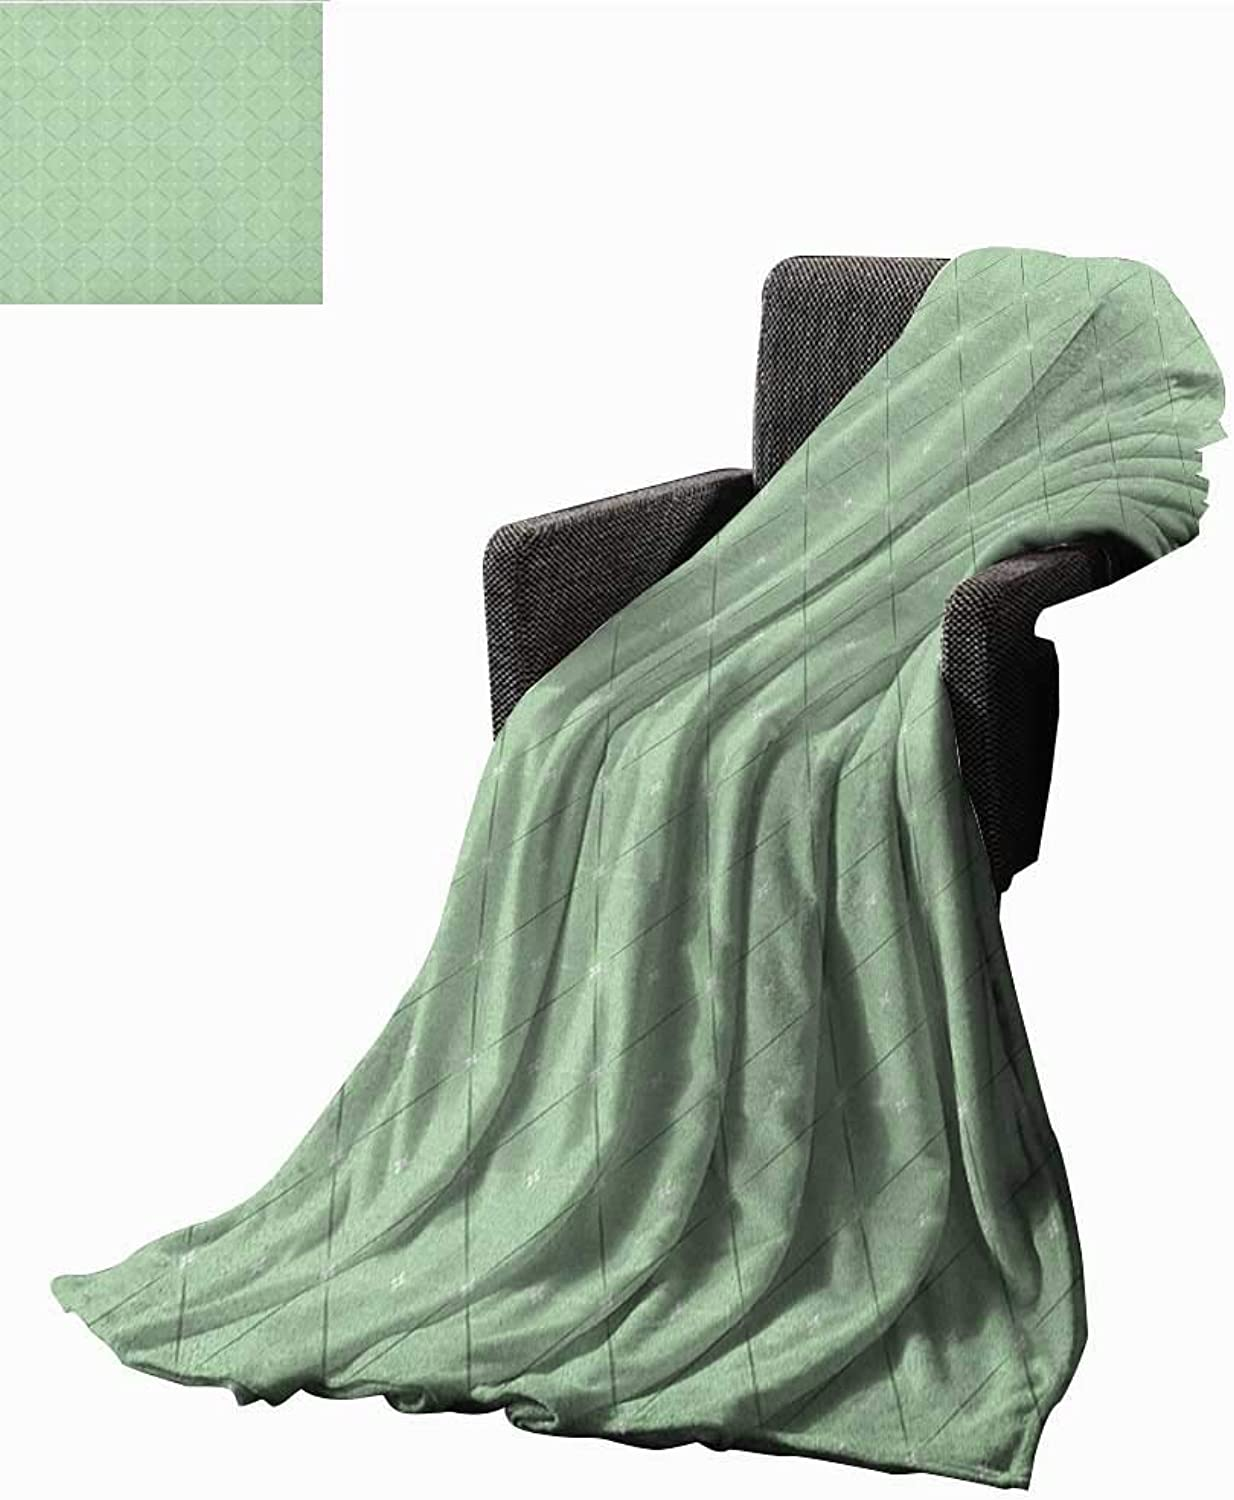 ScottDecor Bed or Couch 60  x 50 Abstract Lightweight Blanket Rhombus and Squares Pattern with Stripes and Flowers Geometric Arrangement Print Summer Quilt Comforter Pale Green White